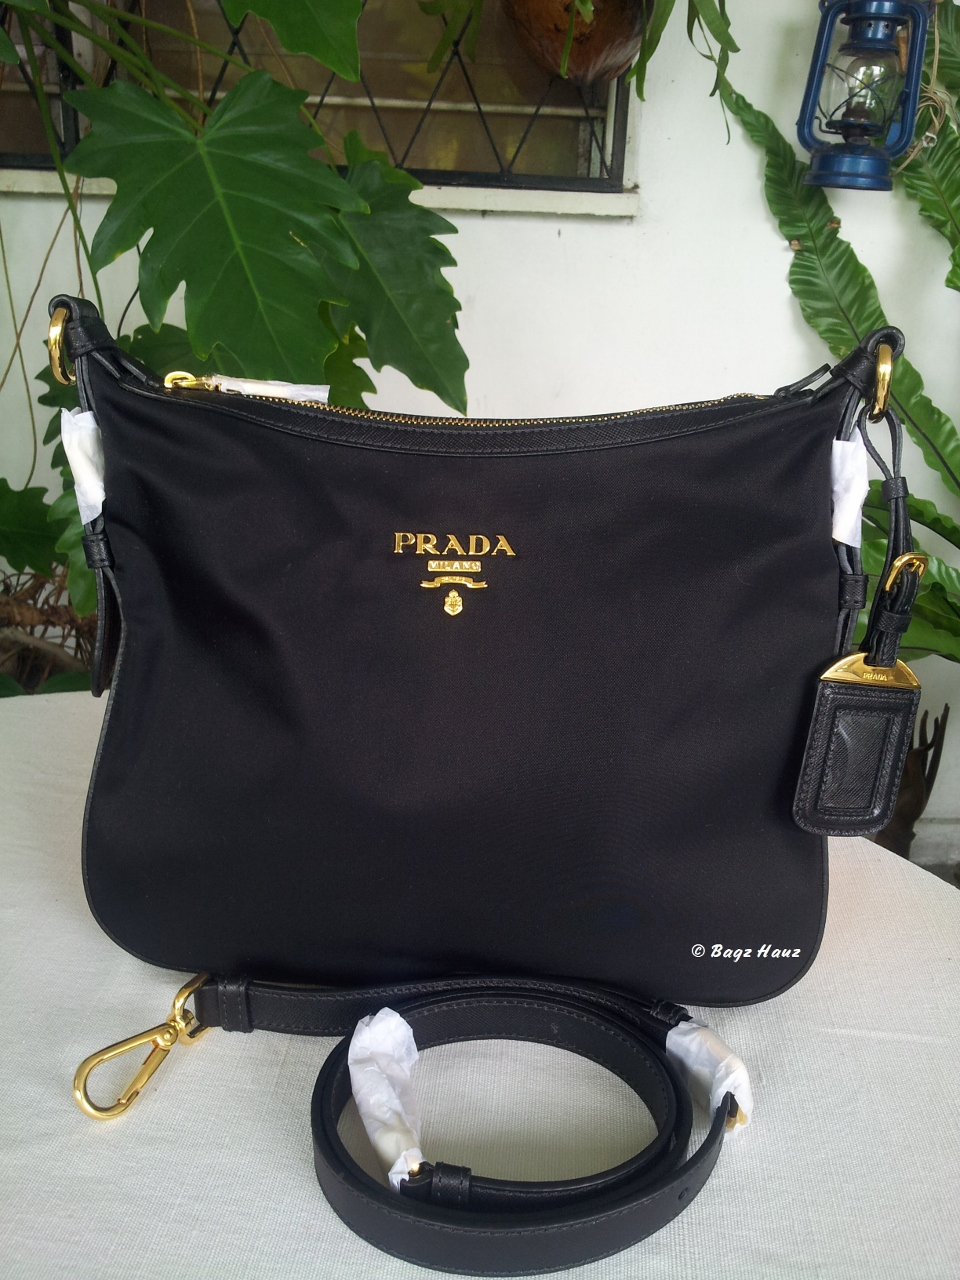 a735d72452f7 Prada Sling Bag 2017 eagle-couriers.co.uk